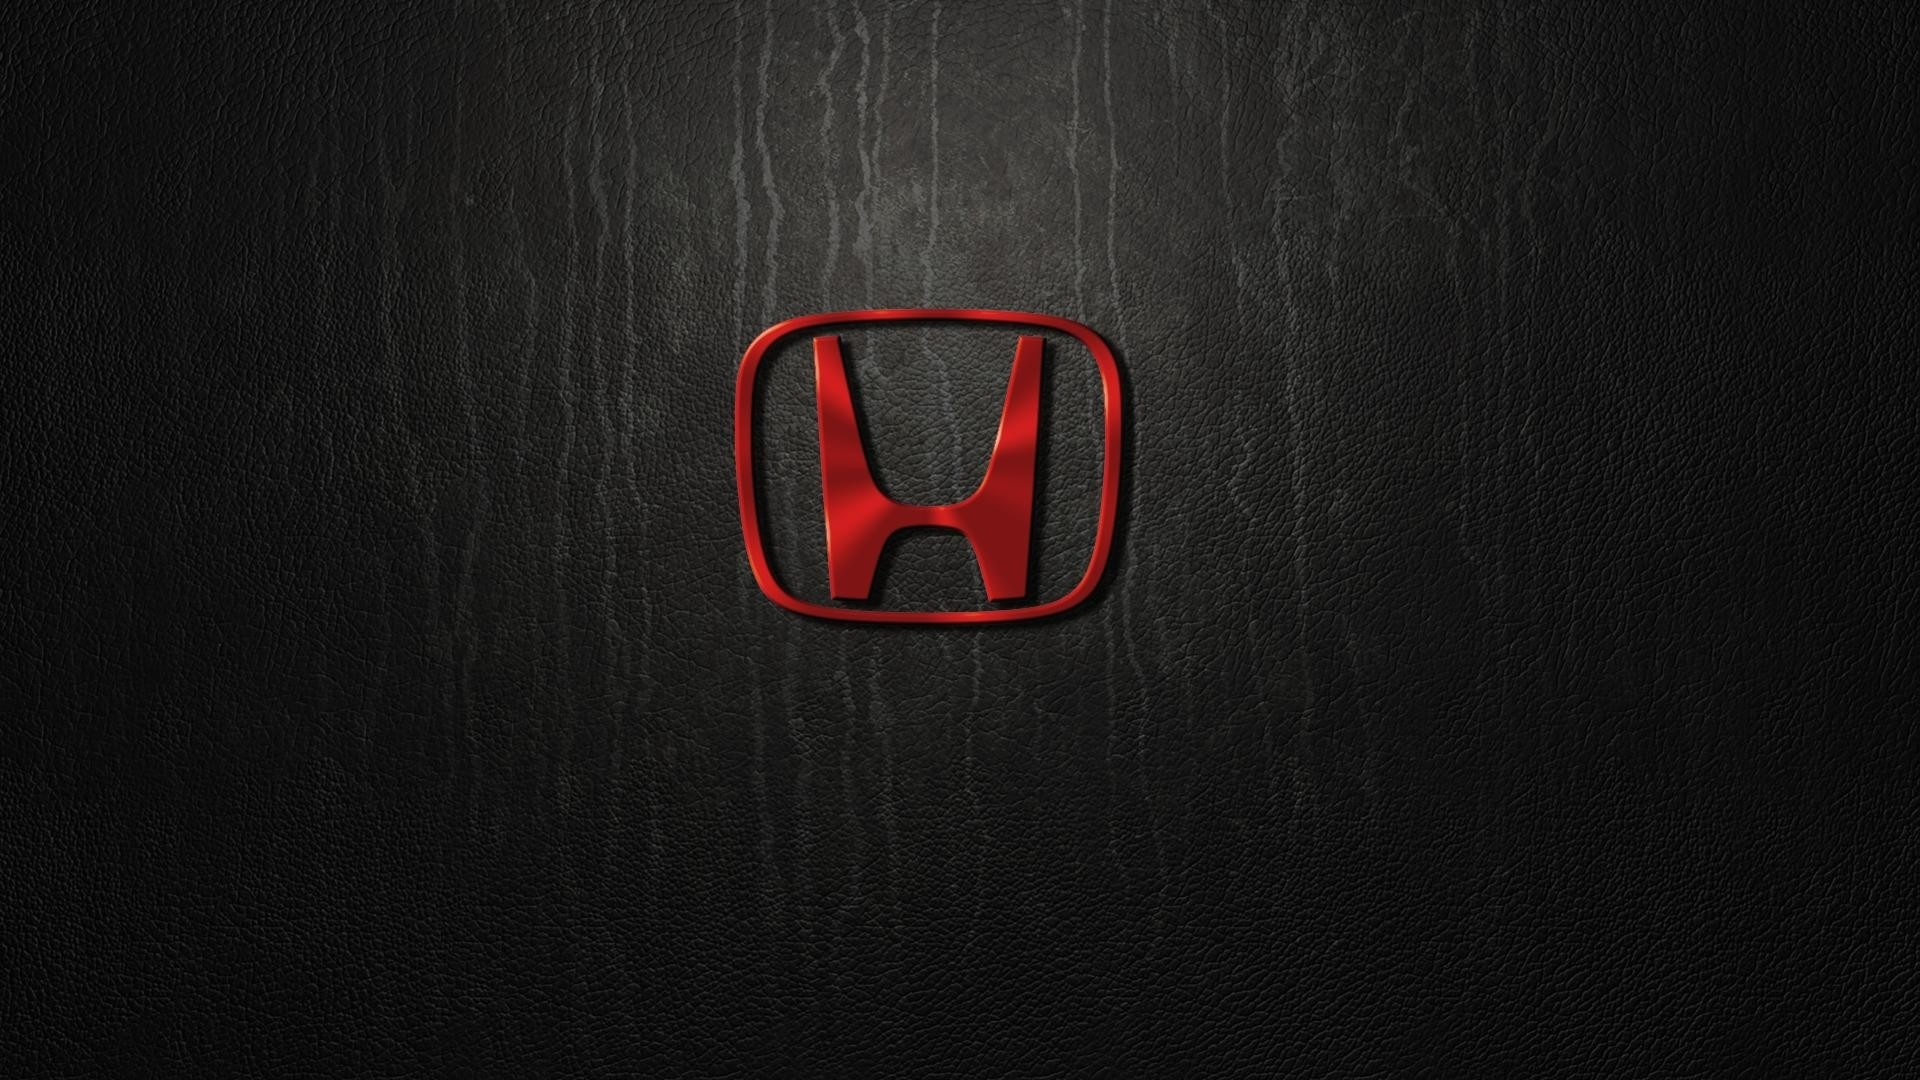 honda logo wallpaper. Black Bedroom Furniture Sets. Home Design Ideas